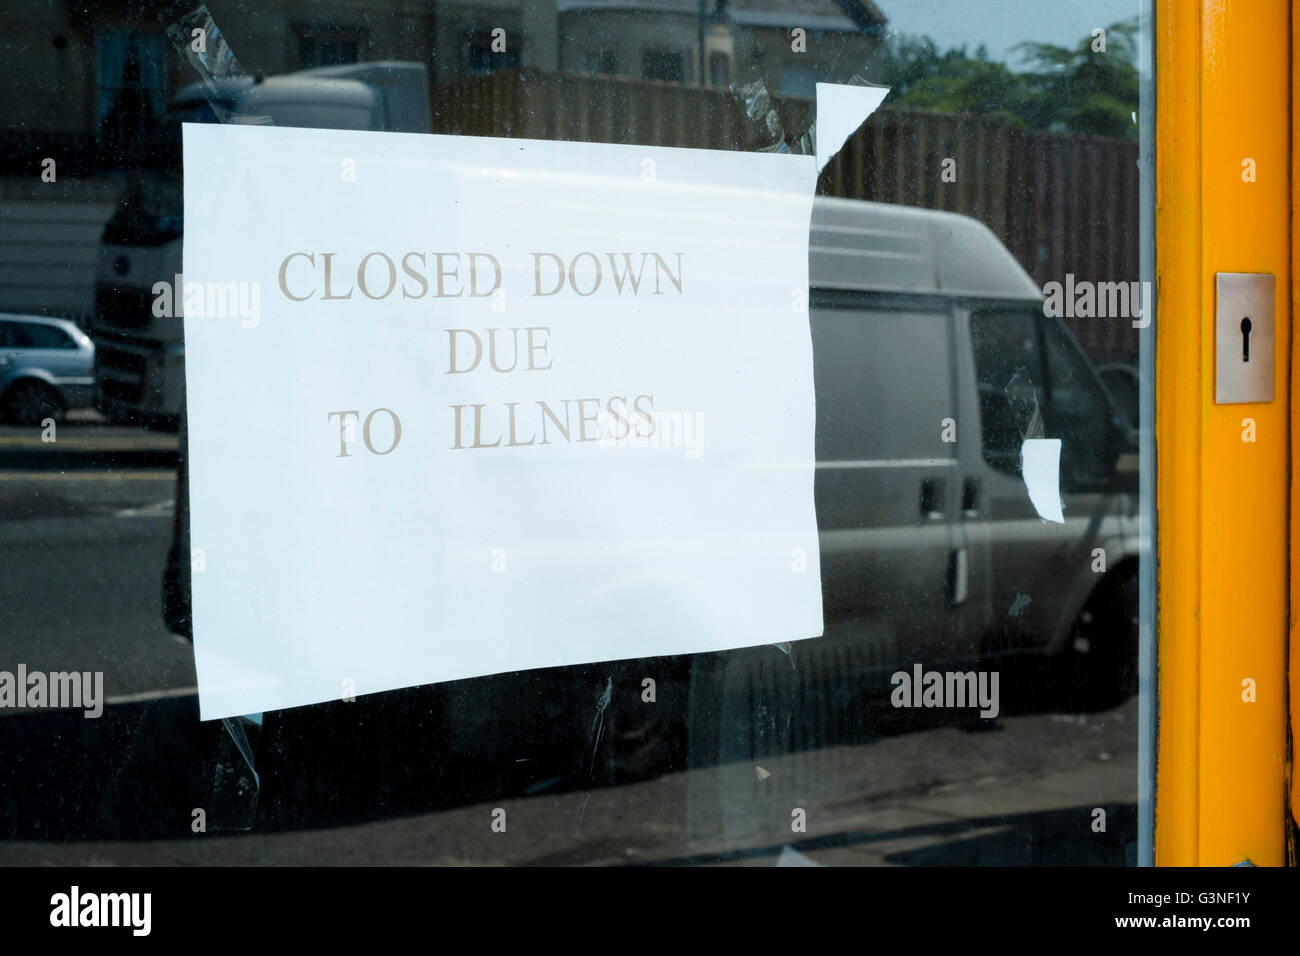 Closed down due to illness sign - Stock Image